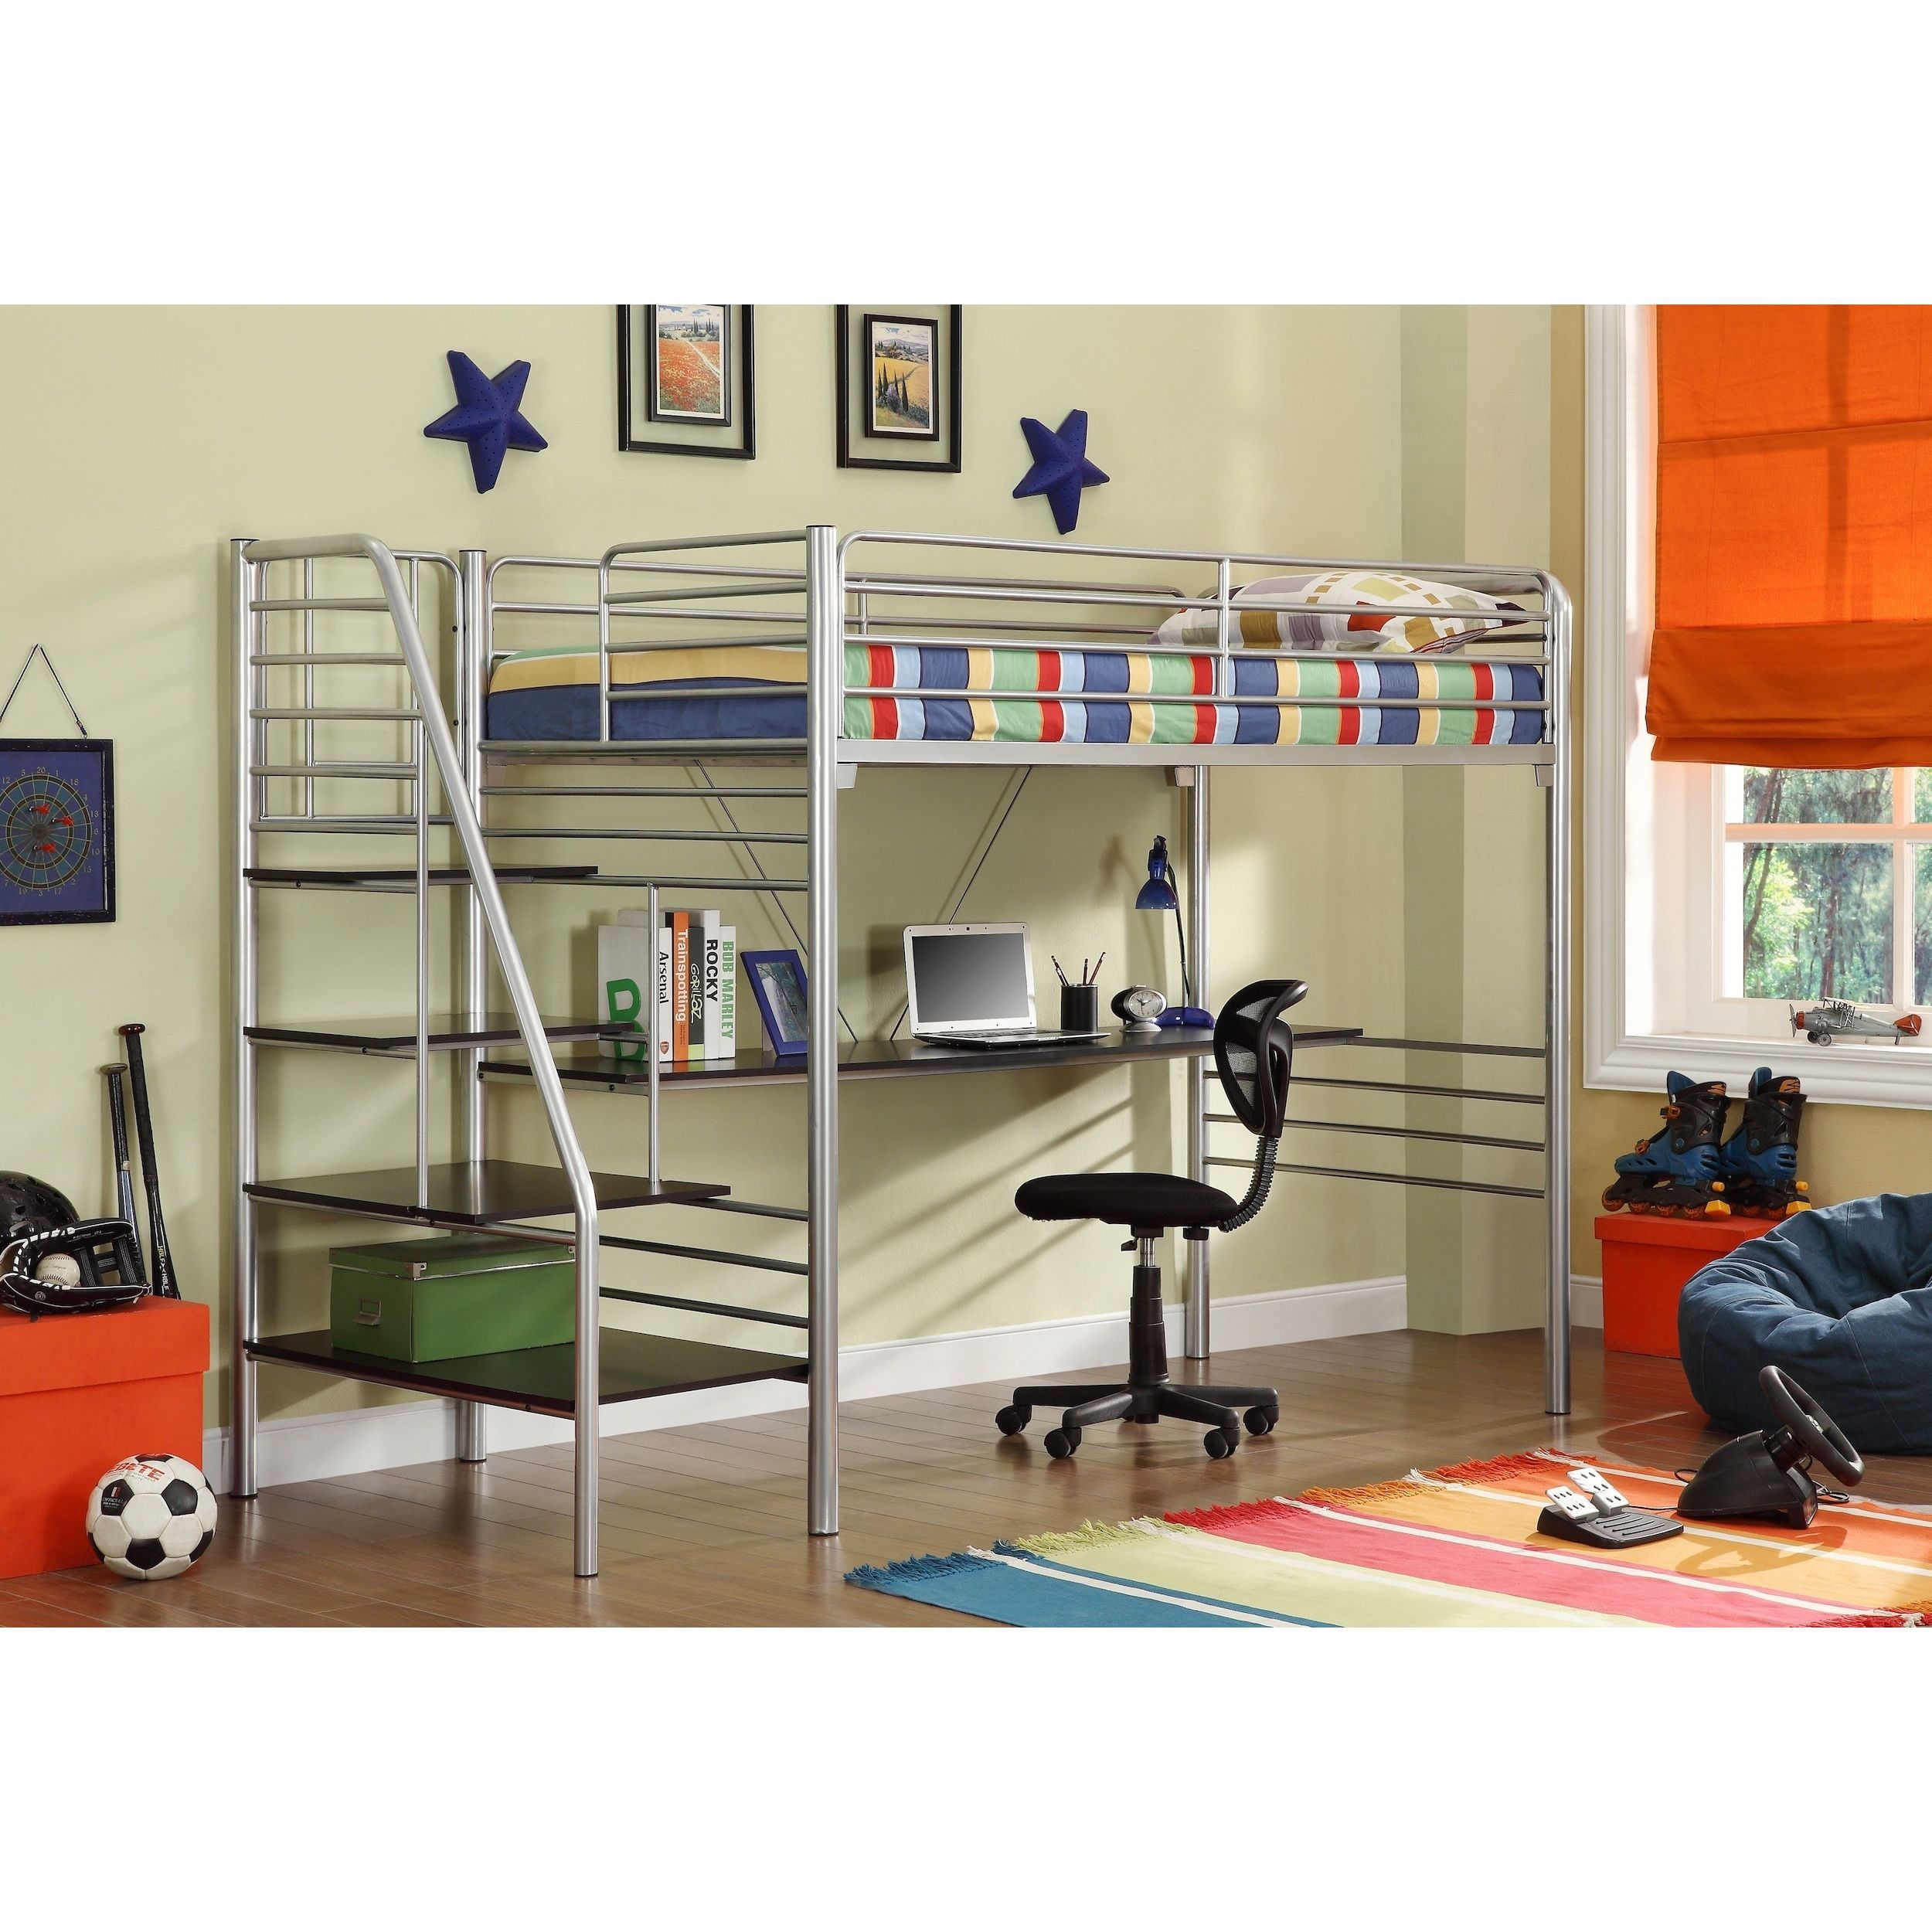 bed adults size stairs and over for of cheap full girls with metal twin beds loft bedroom couch bunk desk